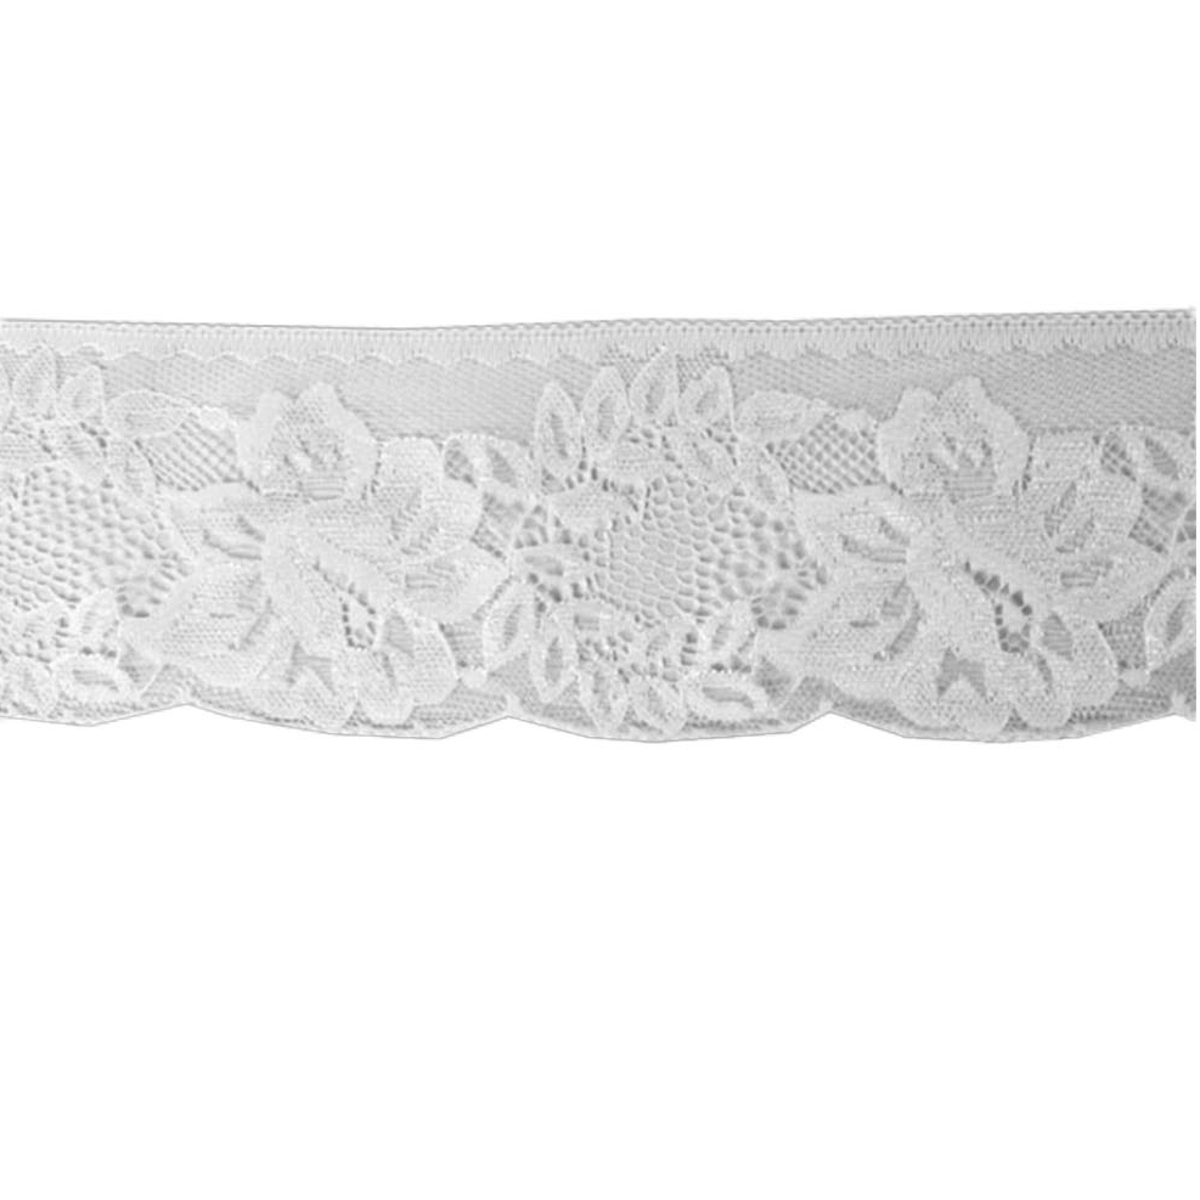 Dentelle - Tulle brodé, blanche 001 | 3829-W | weiss